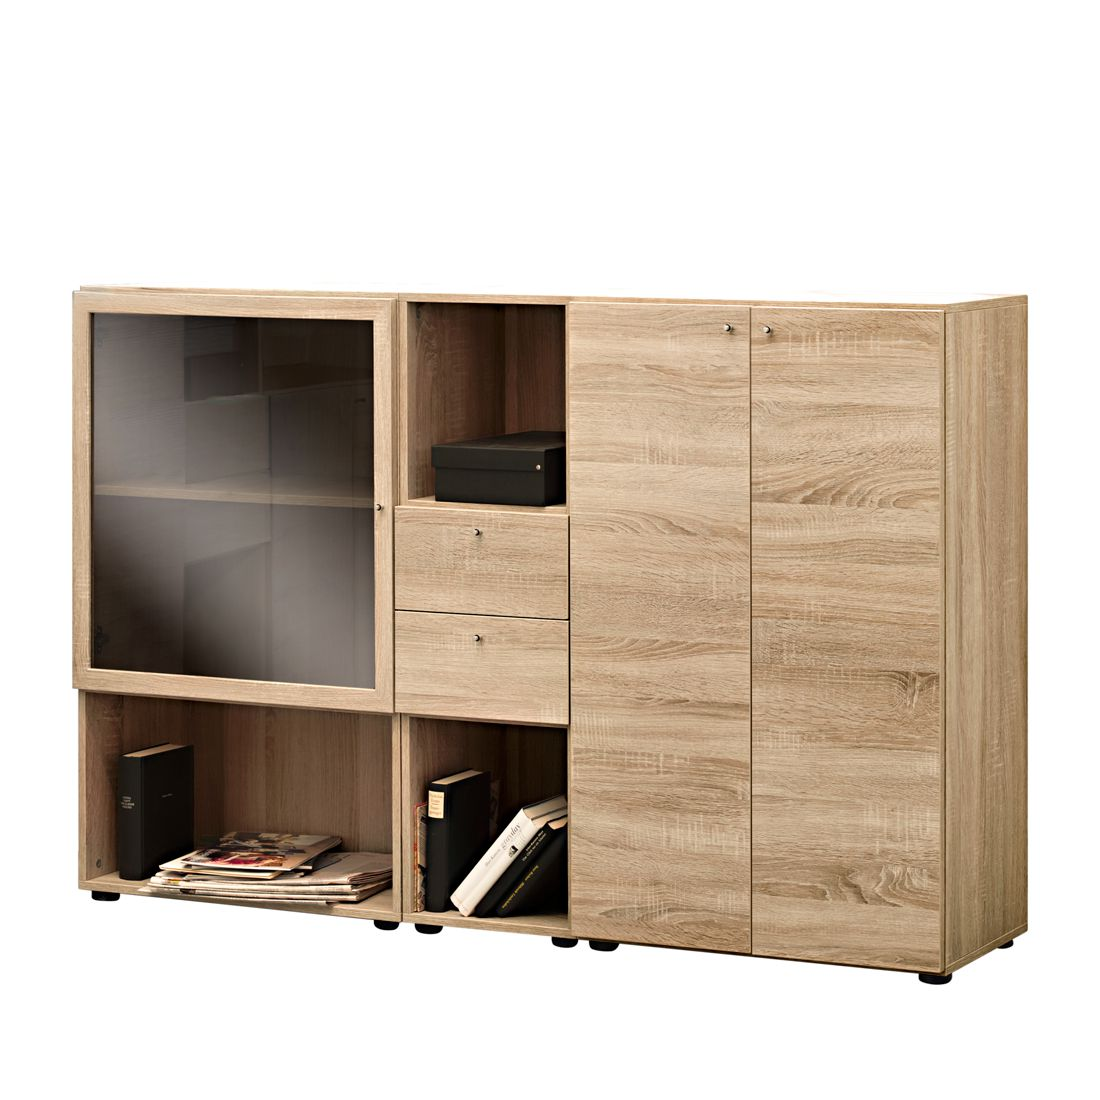 sideboard carry 3 ordnerh hen eiche dekor arte m online kaufen. Black Bedroom Furniture Sets. Home Design Ideas